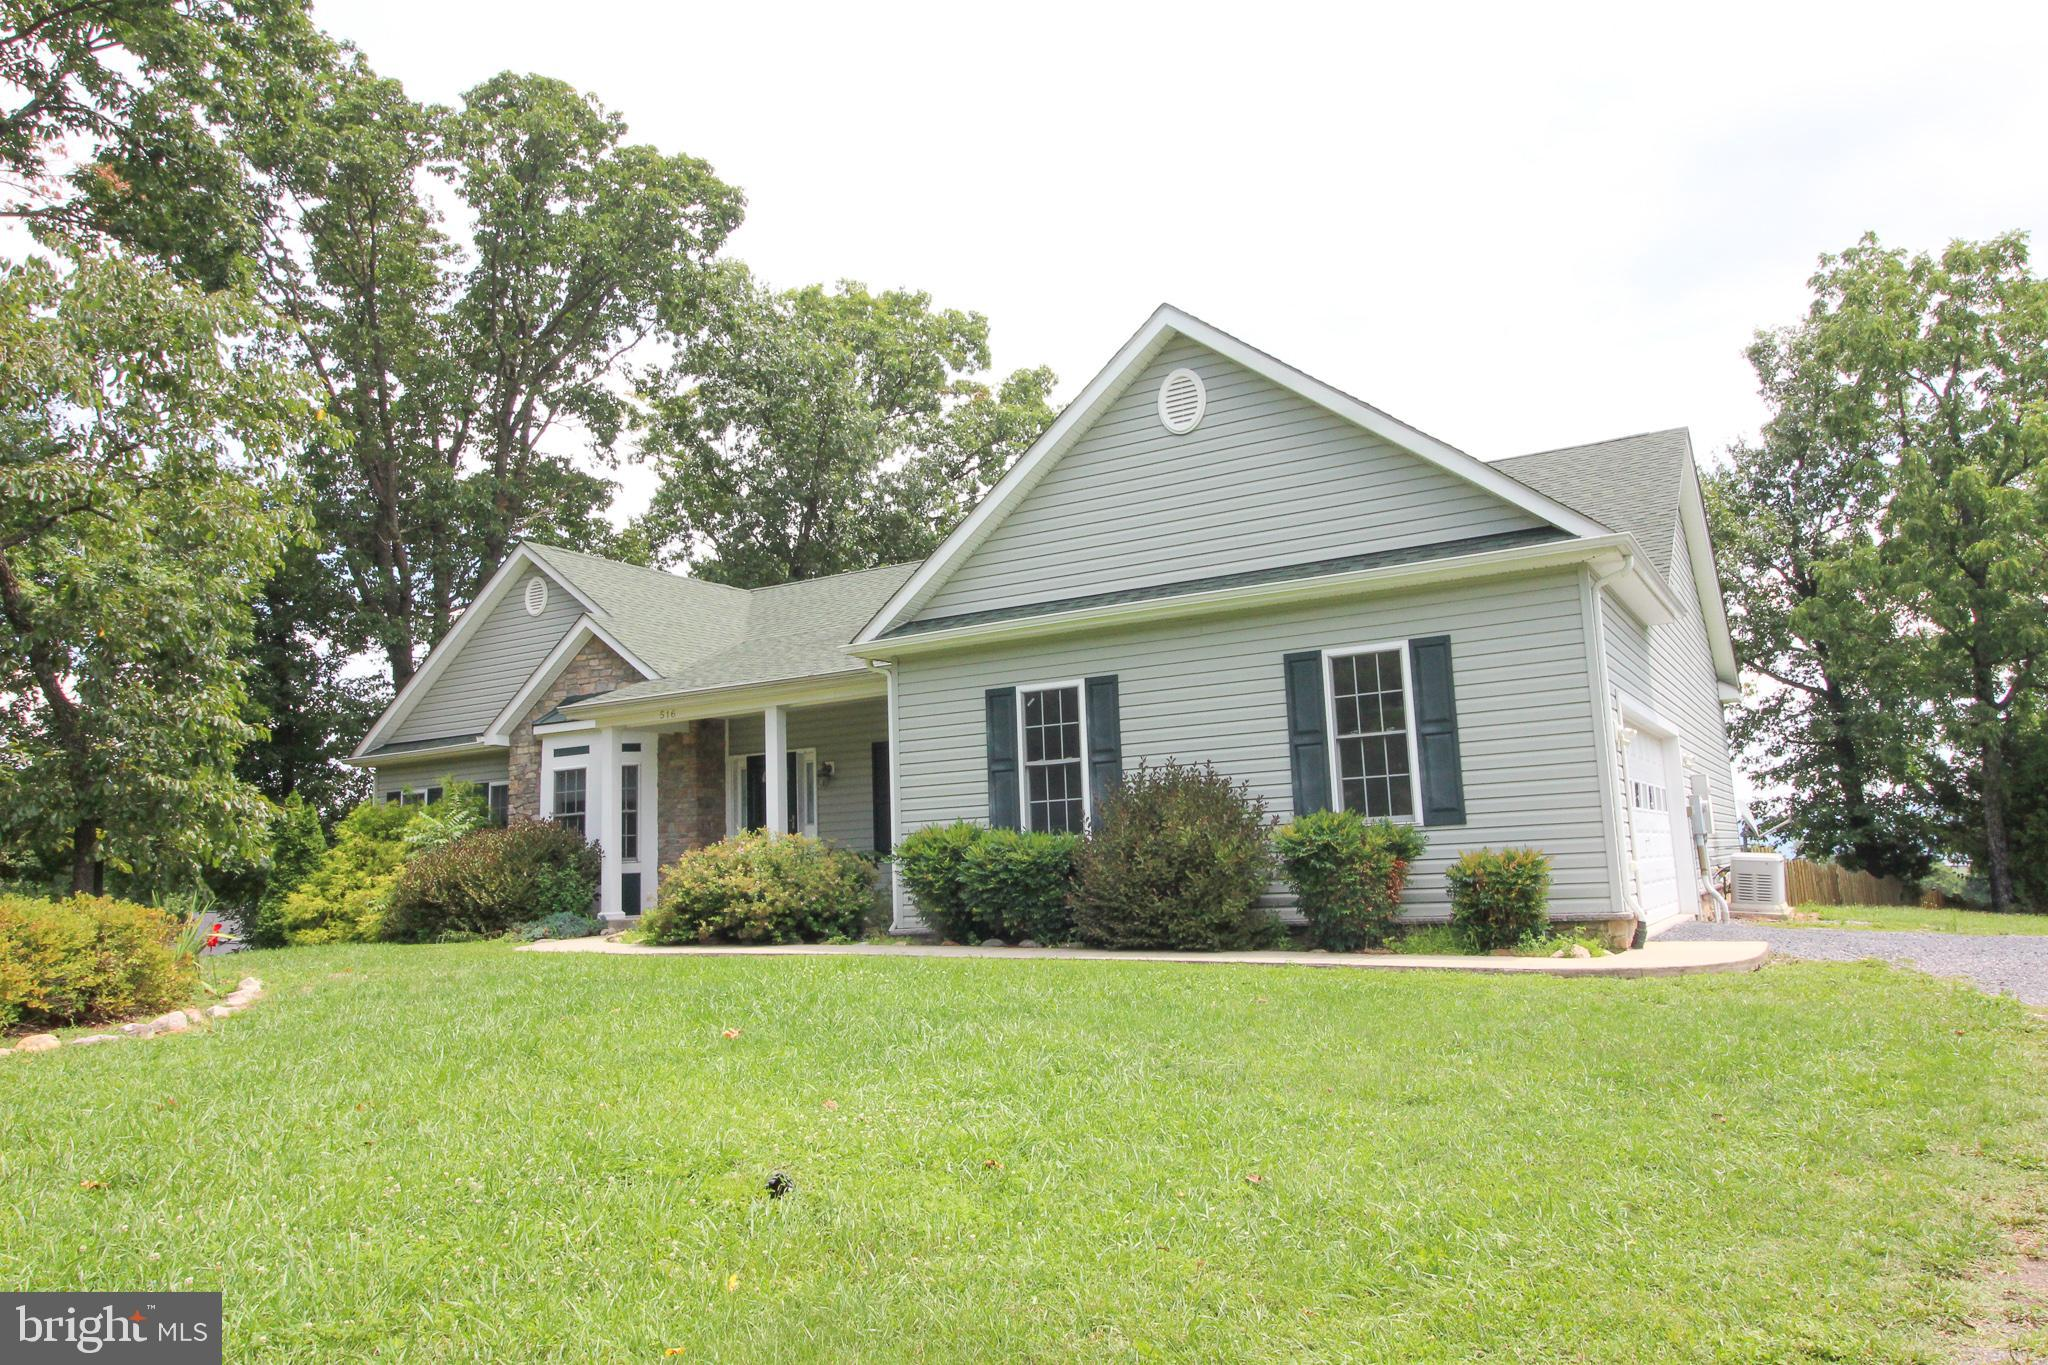 516 ZEPP ROAD, MAURERTOWN, VA 22644